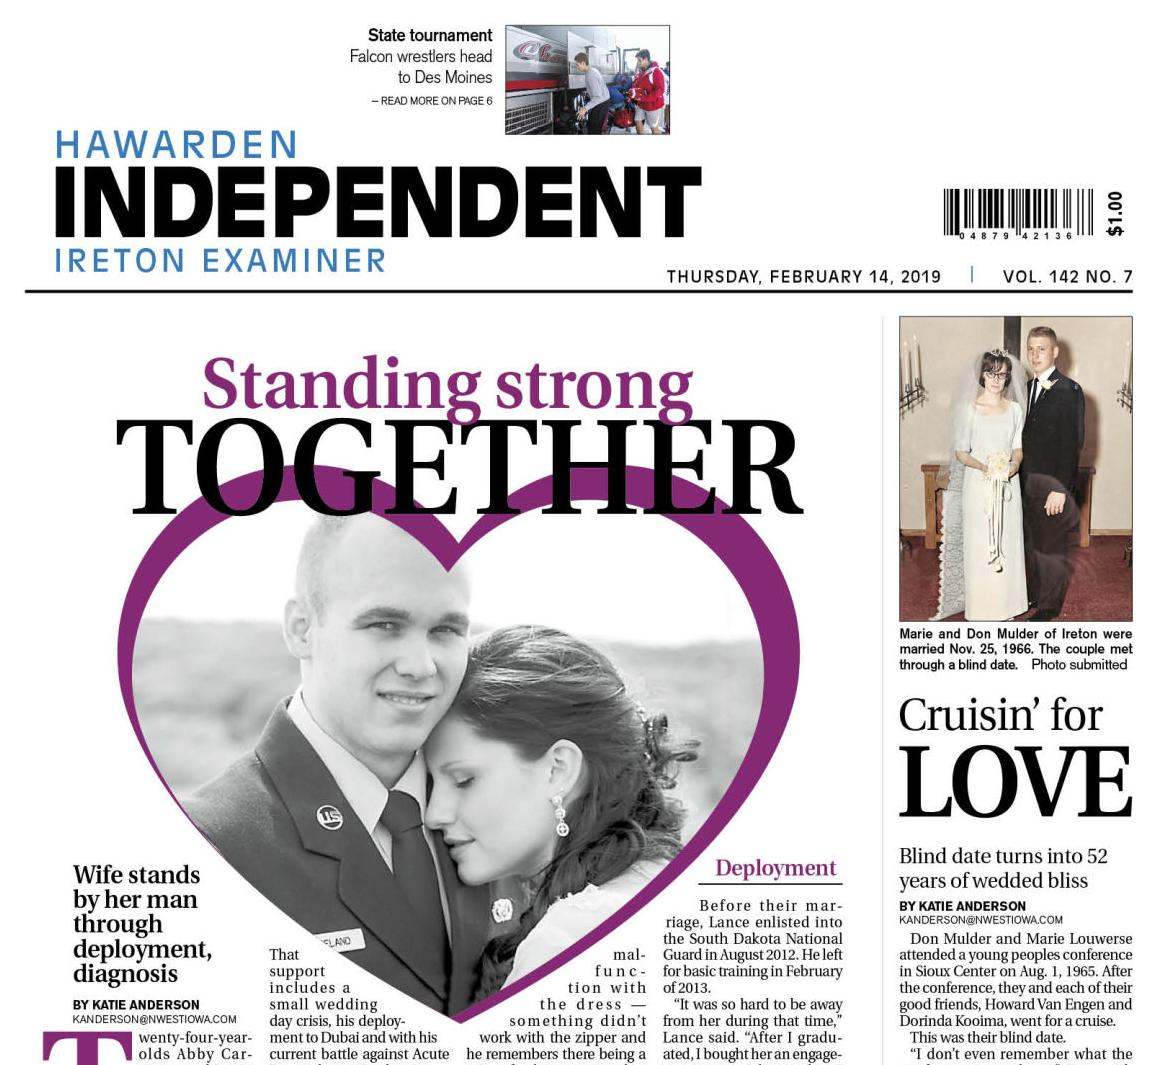 Hawarden Independent/Ireton Examiner Feb. 14, 2019